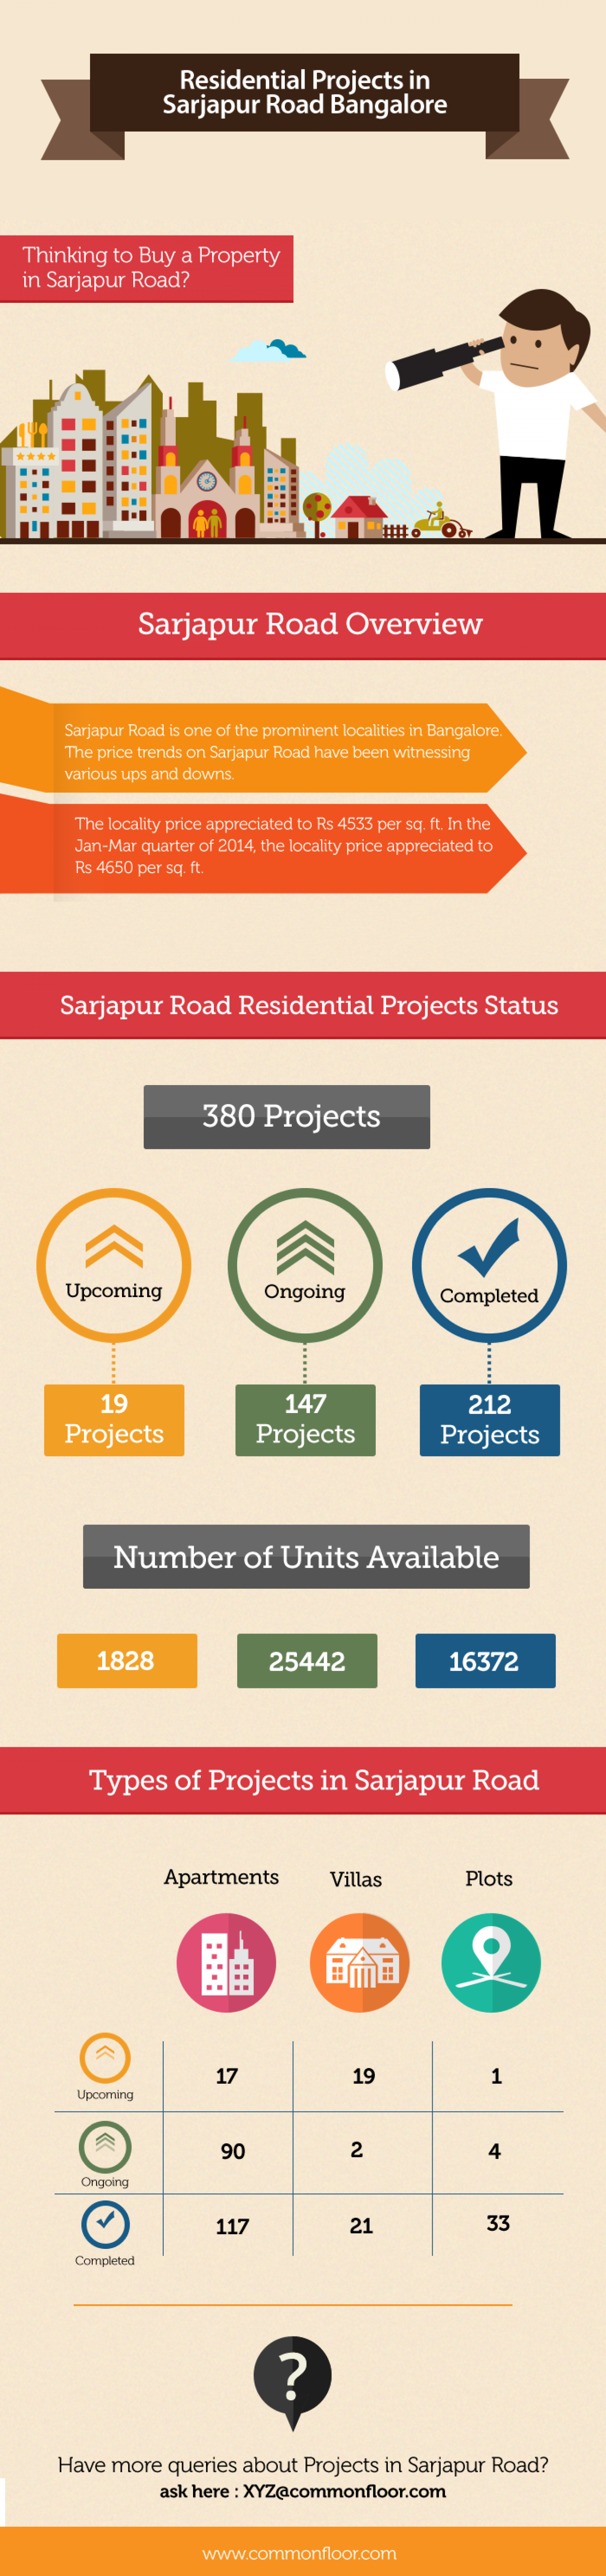 Residential Projects in Sarjapur Road, Bangalore Infographic